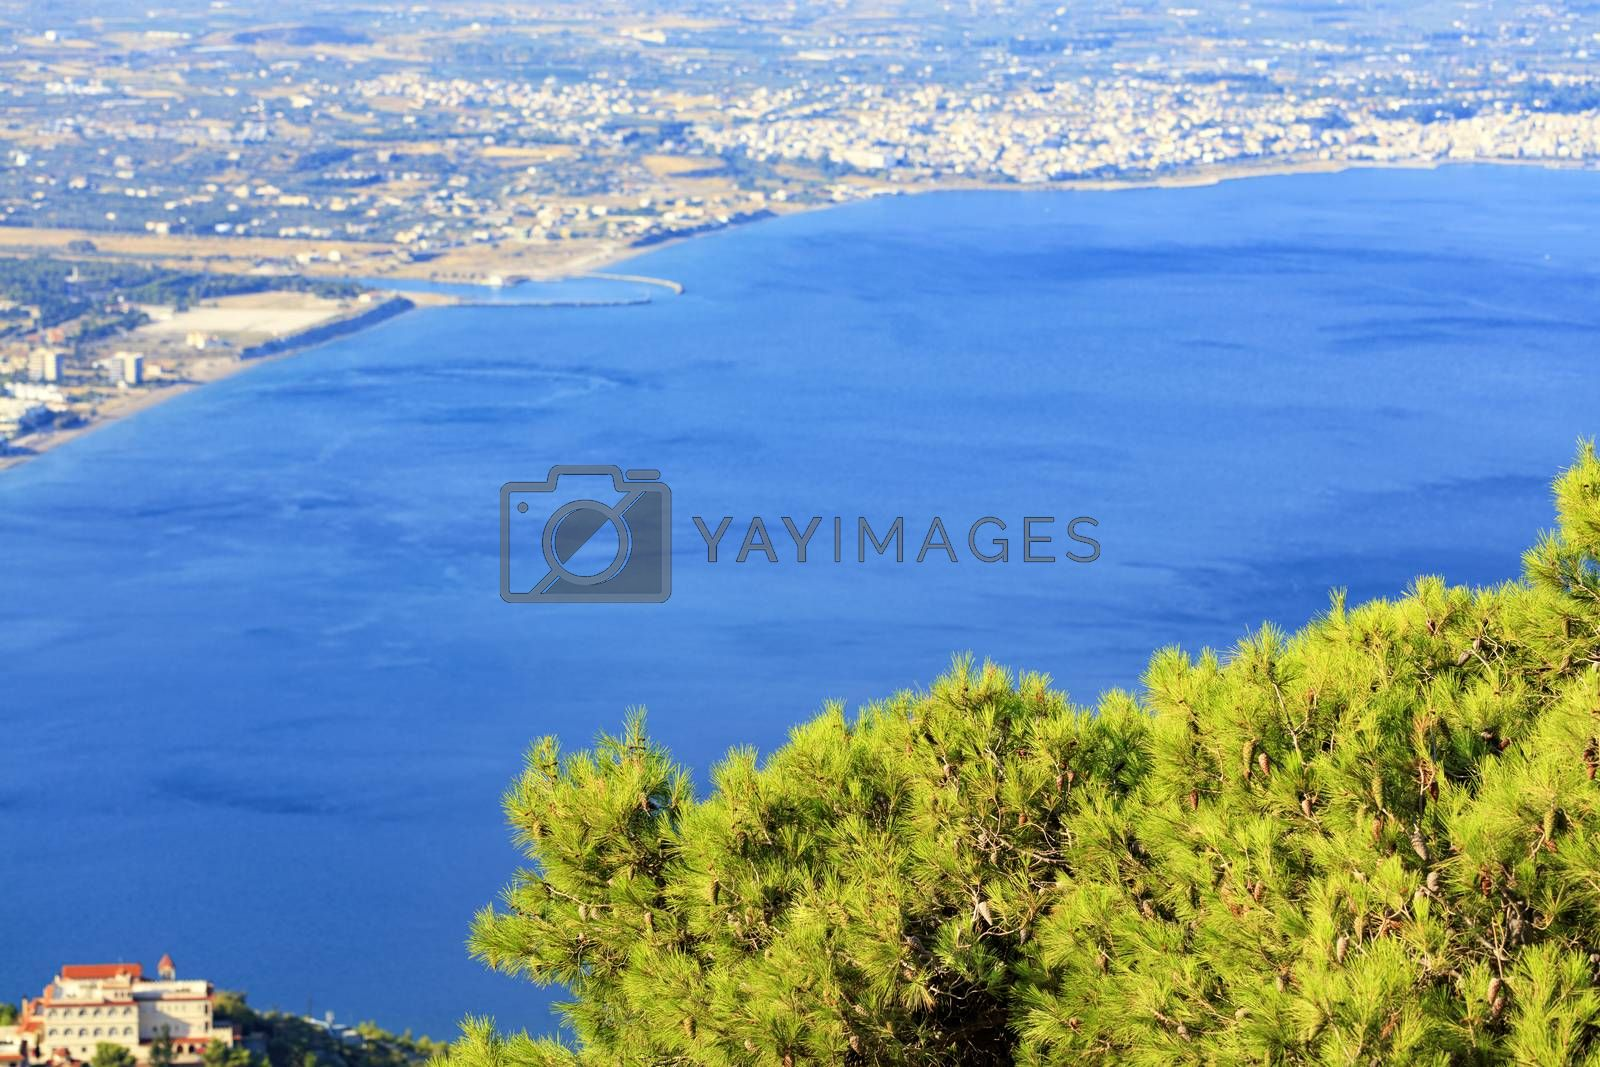 Beautiful fluffy fir branch with cones in bright sunlight against the background of a blurry sea of blue Corinthian gulf in Greece.